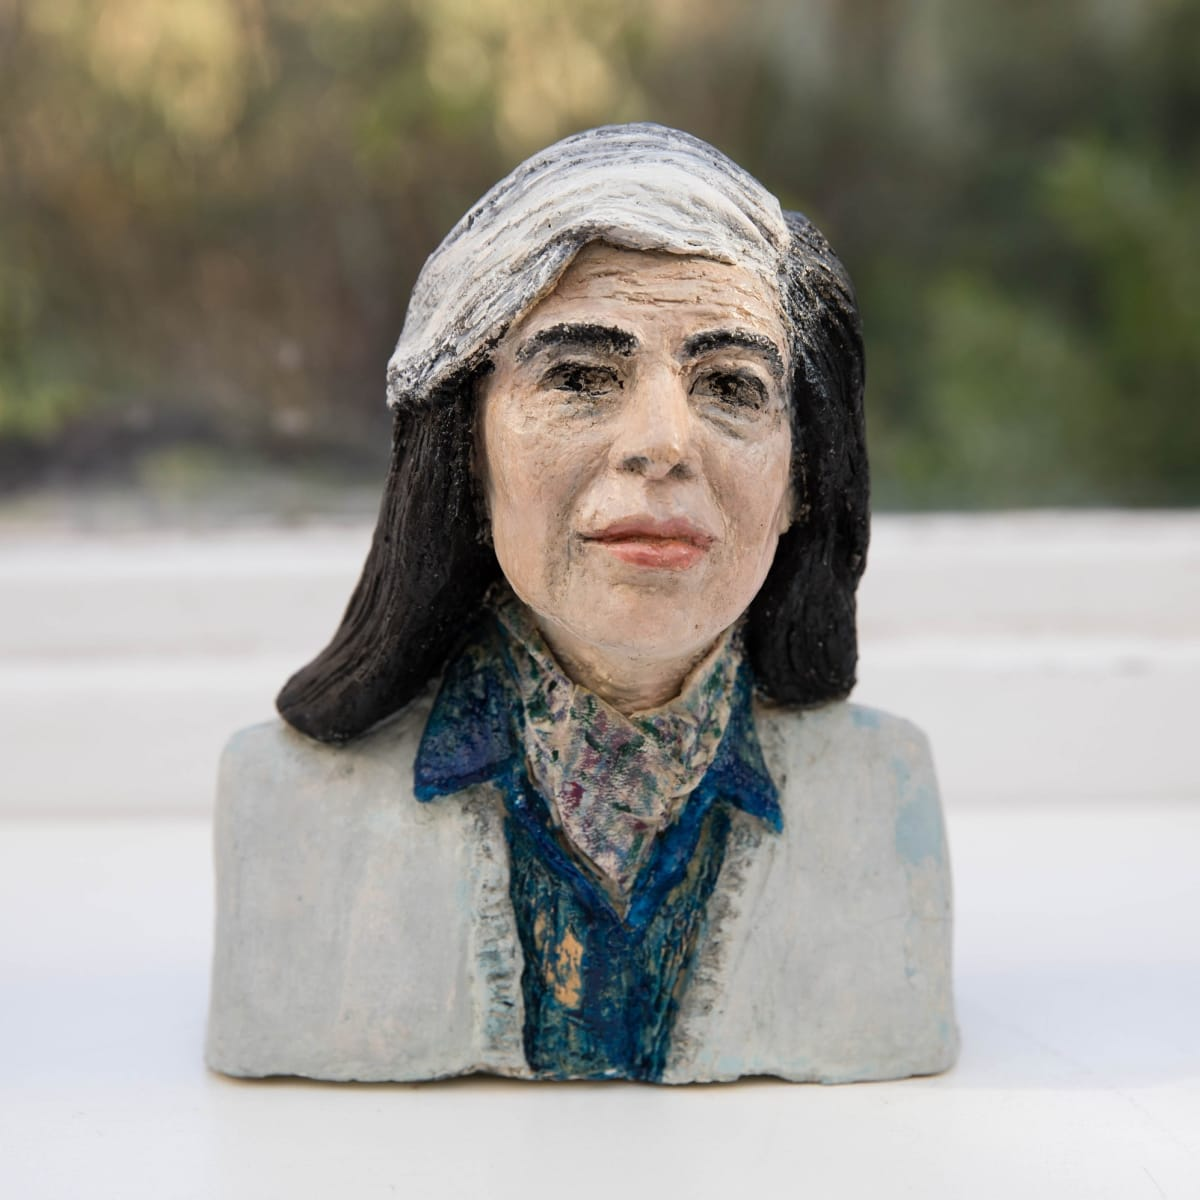 Nicole Farhi Susan Sontag ciment fondu and acrylic; hand-painted bronze casts available to purchase 18 x 15 x 7 cm edition of 7 + 3 APs